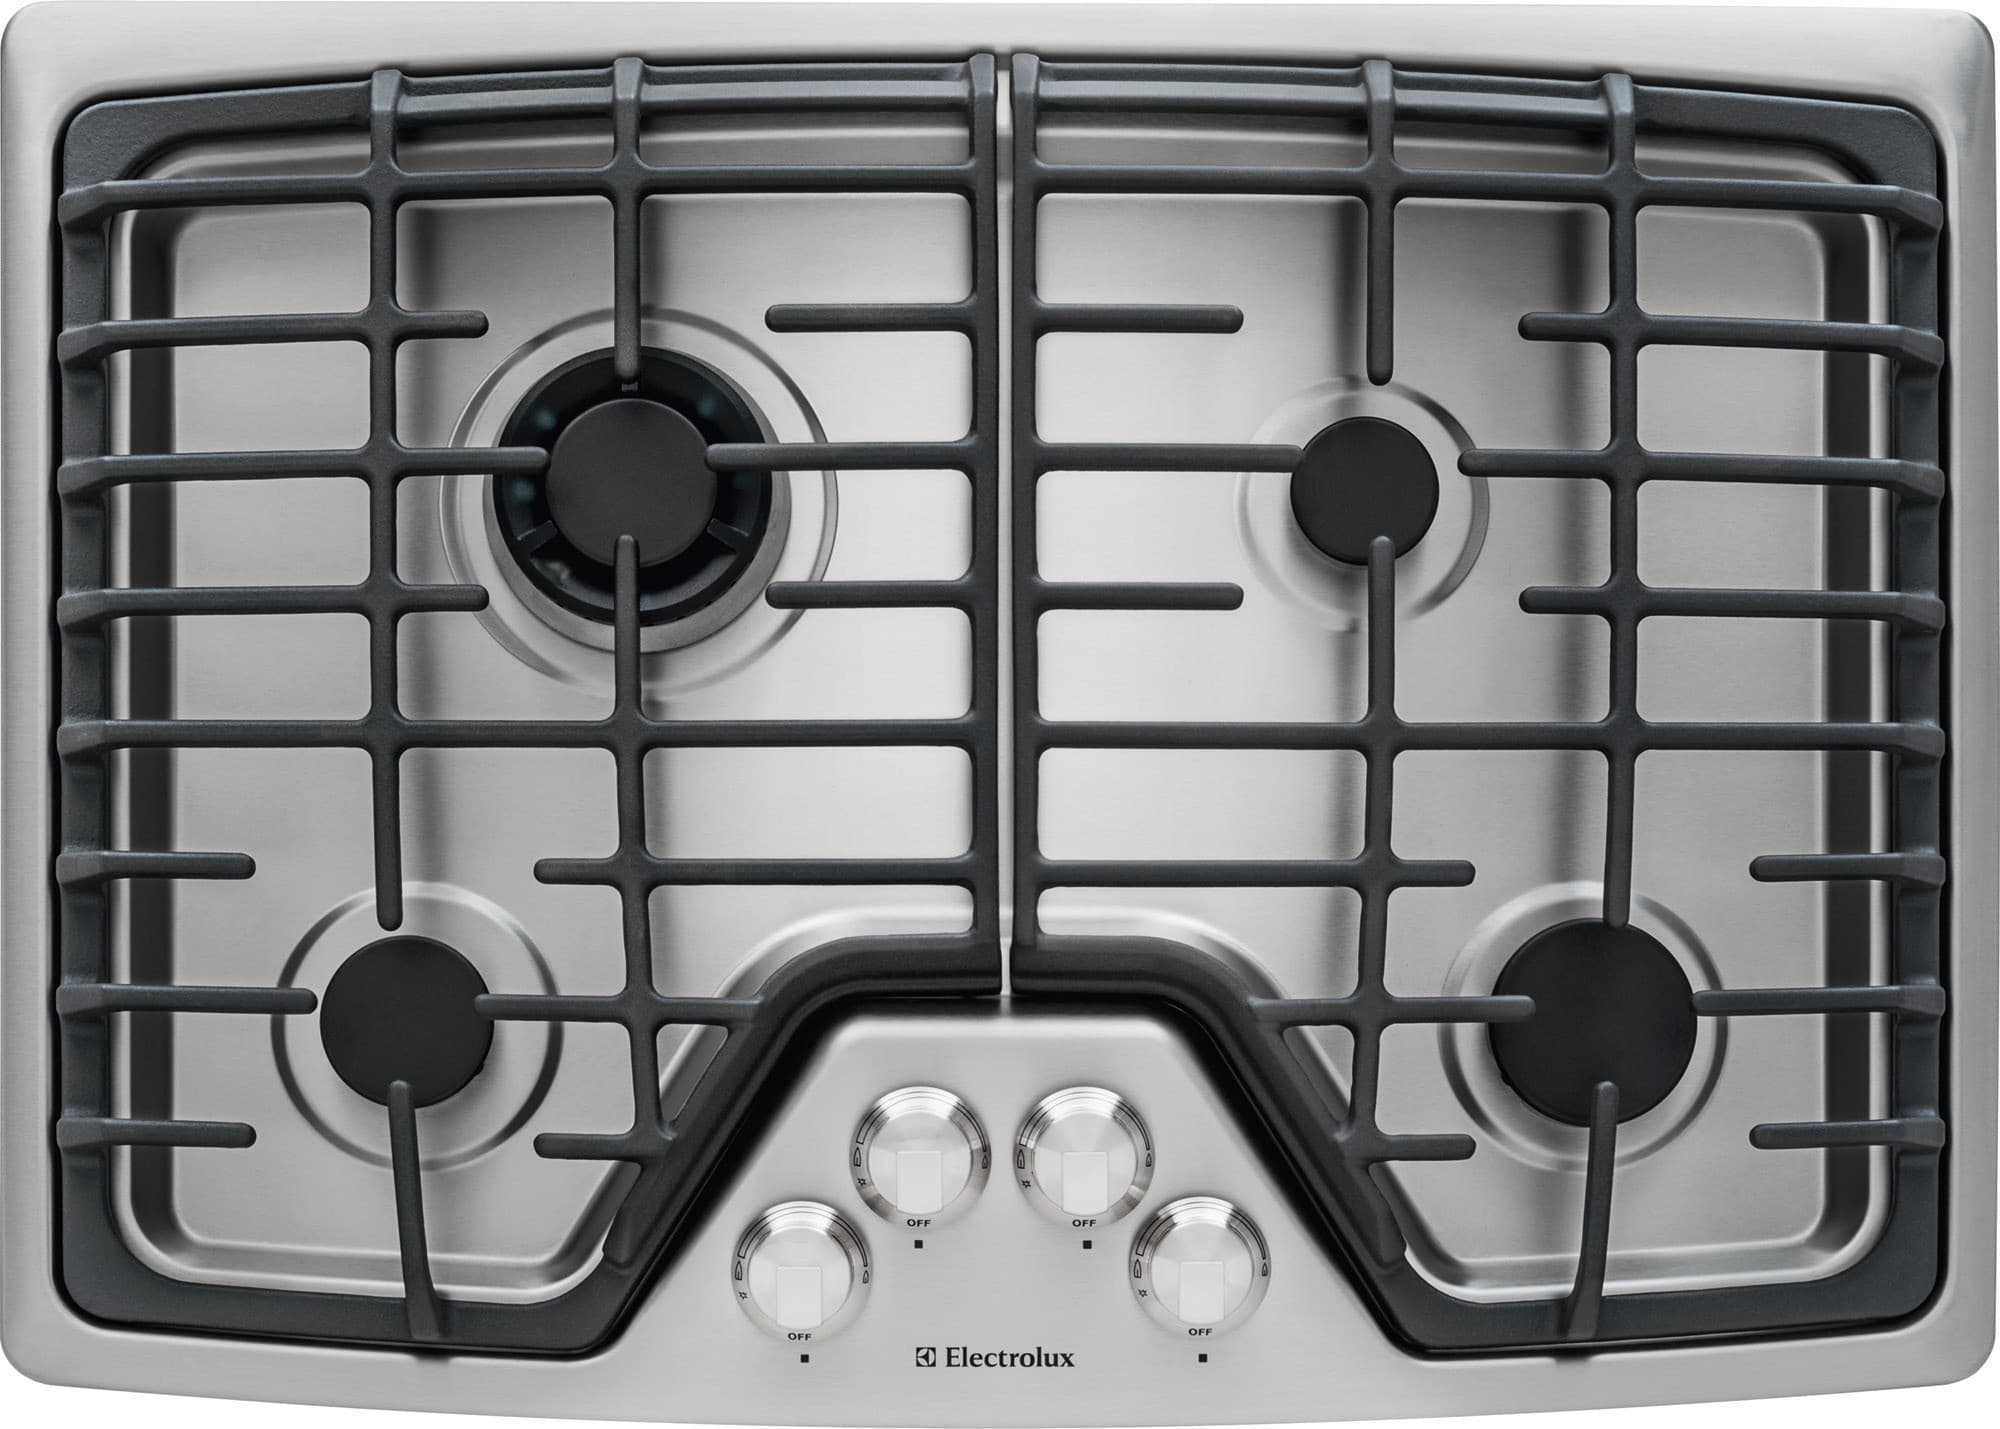 electrolux ew30gc55ps 30 inch gas cooktop with 4 sealed burners min2max dualflame sealed burner control knobs continuous cast iron